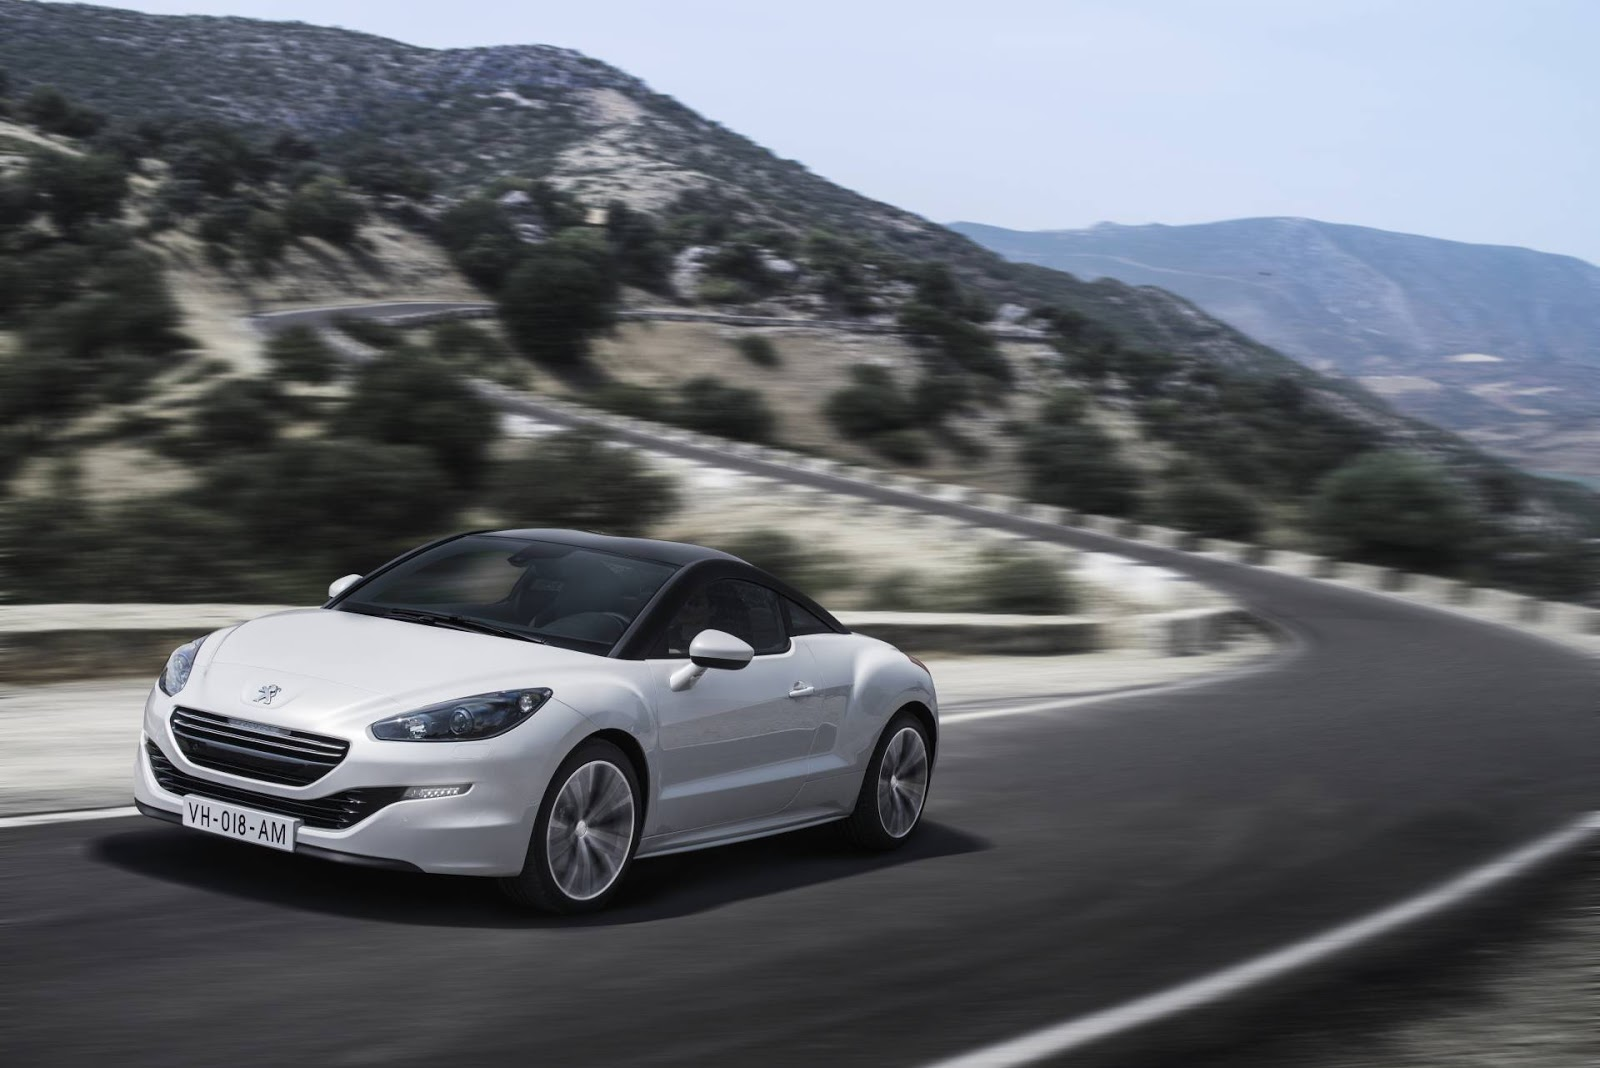 peugeot rcz coupe 2013 hottest car wallpapers bestgarage. Black Bedroom Furniture Sets. Home Design Ideas